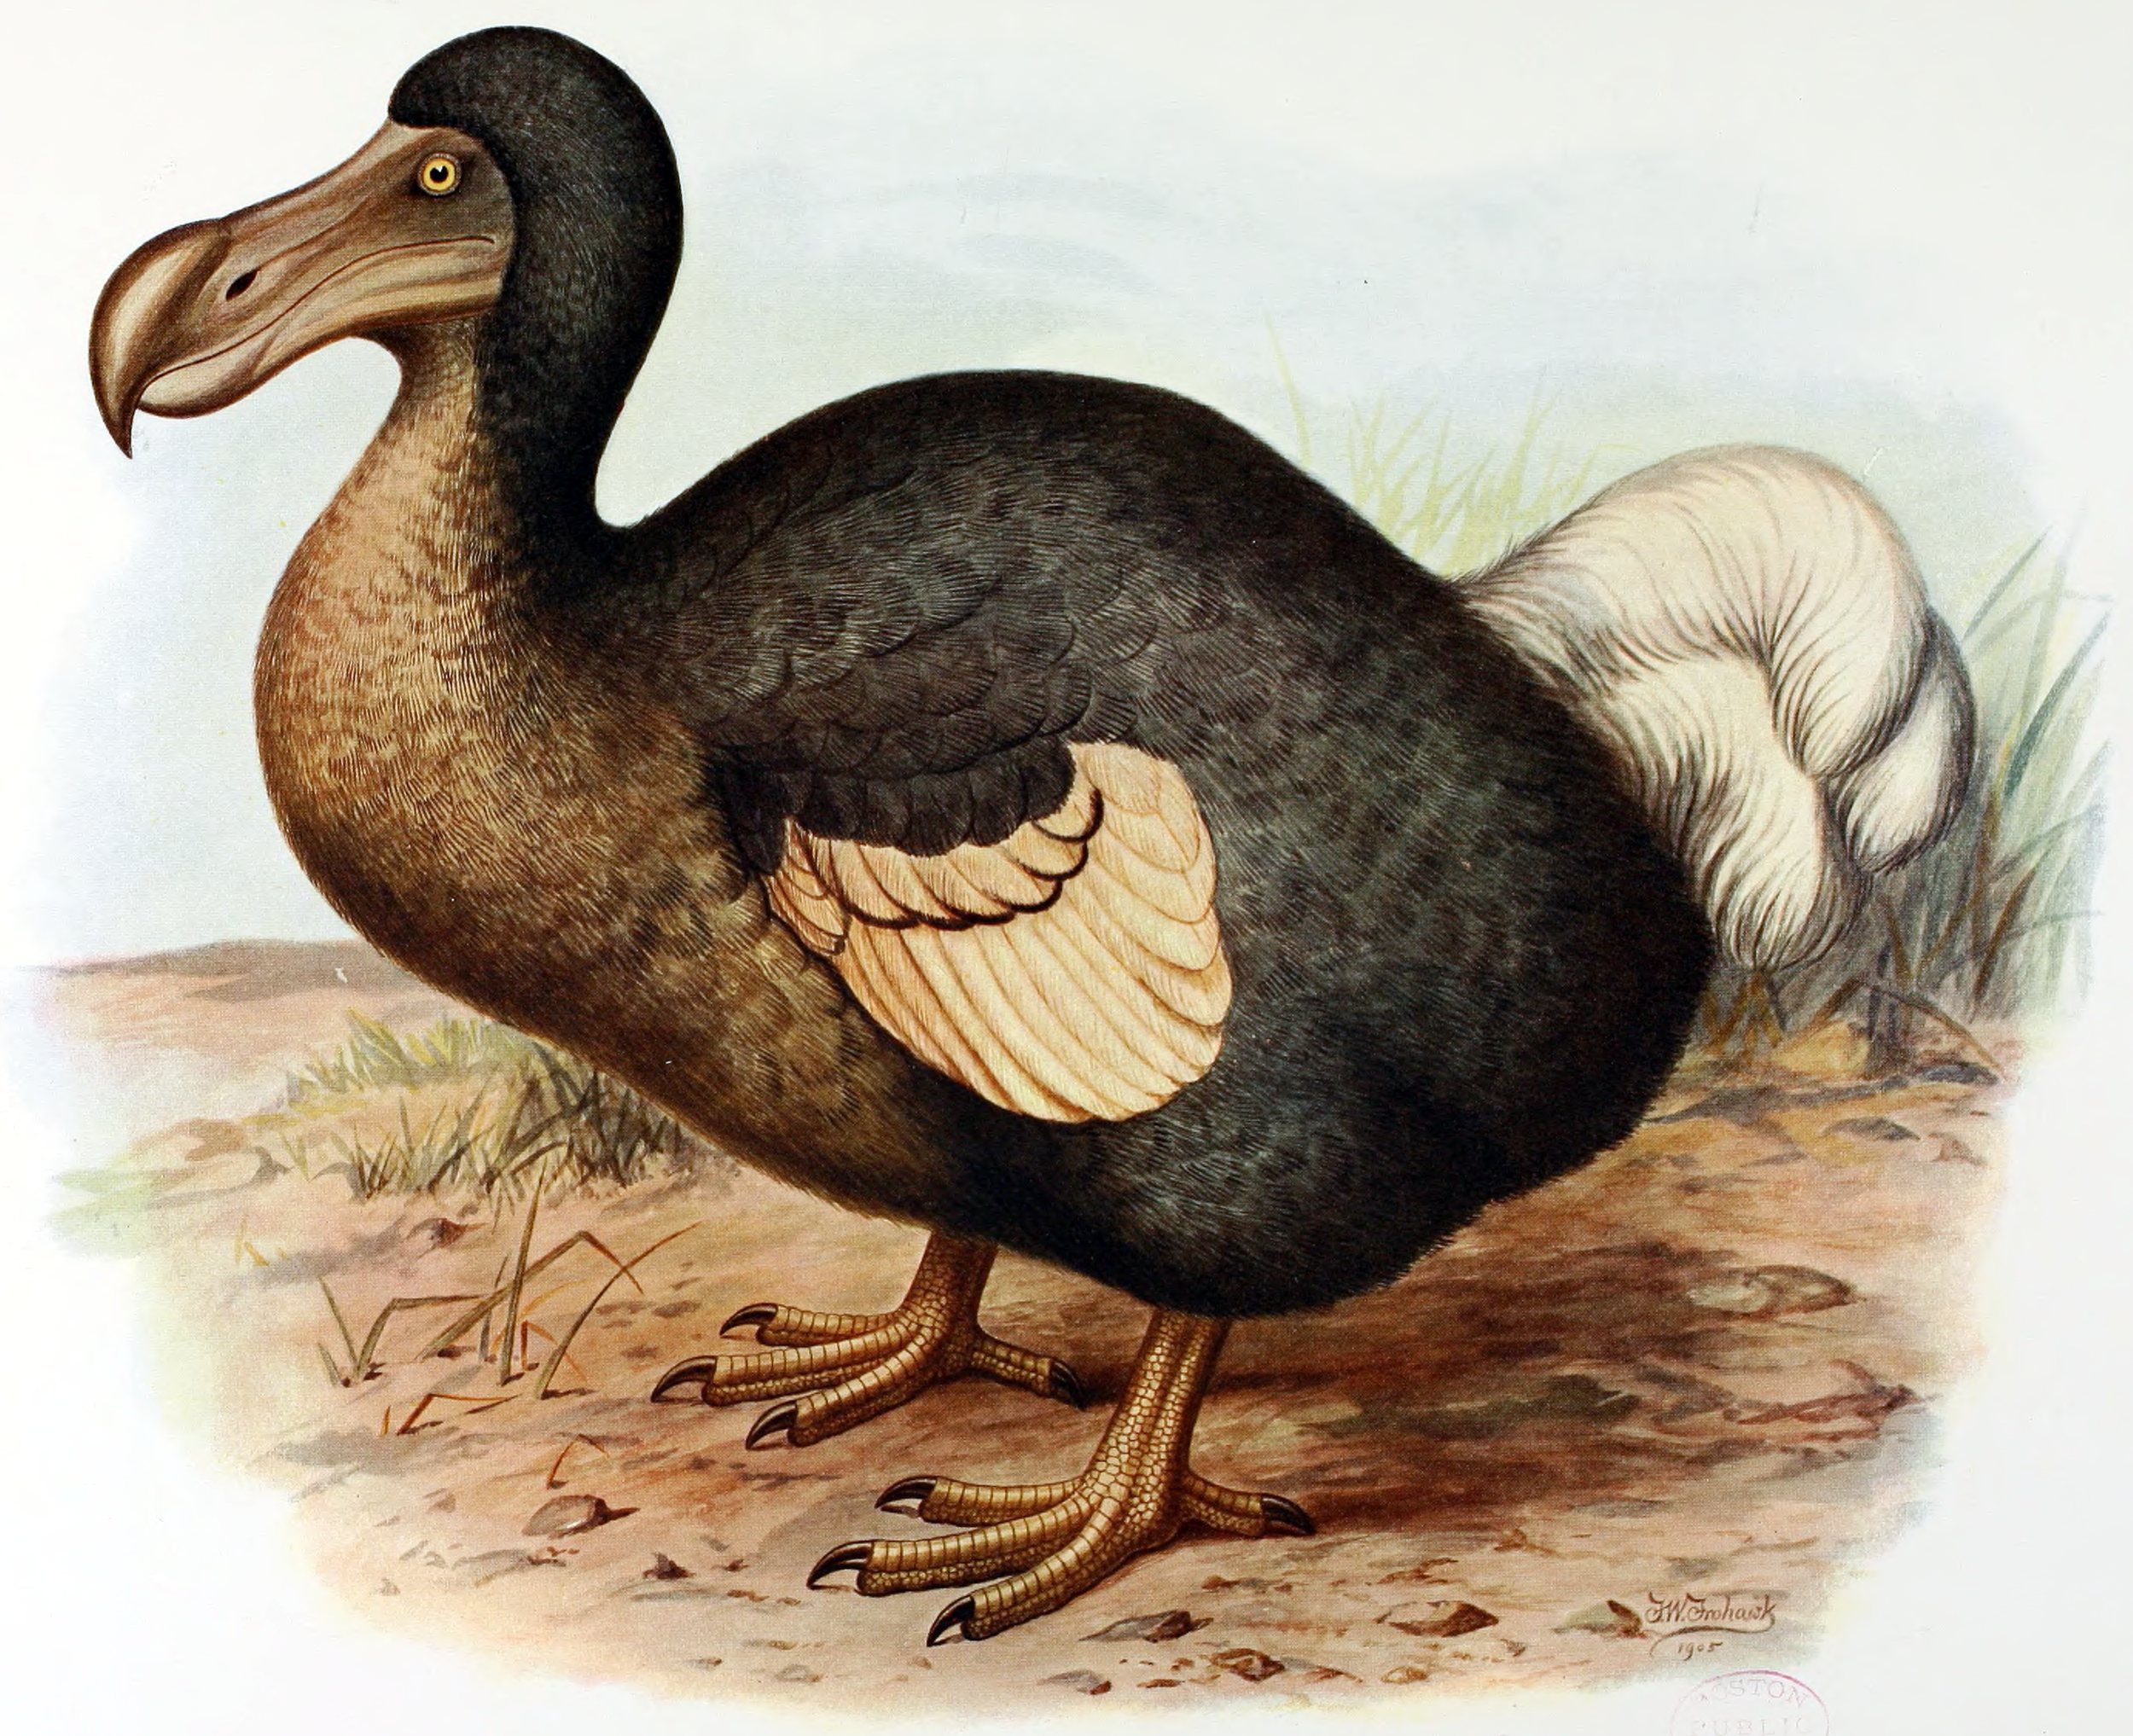 The Dodo was a species of flightless bird endemic to Mauritius. They became extinct in the 17th century after Dutch sailors hunted and ate them. Today the Dodo is a national symbol for the country, and they are included in many souvenirs that can be found on the island.